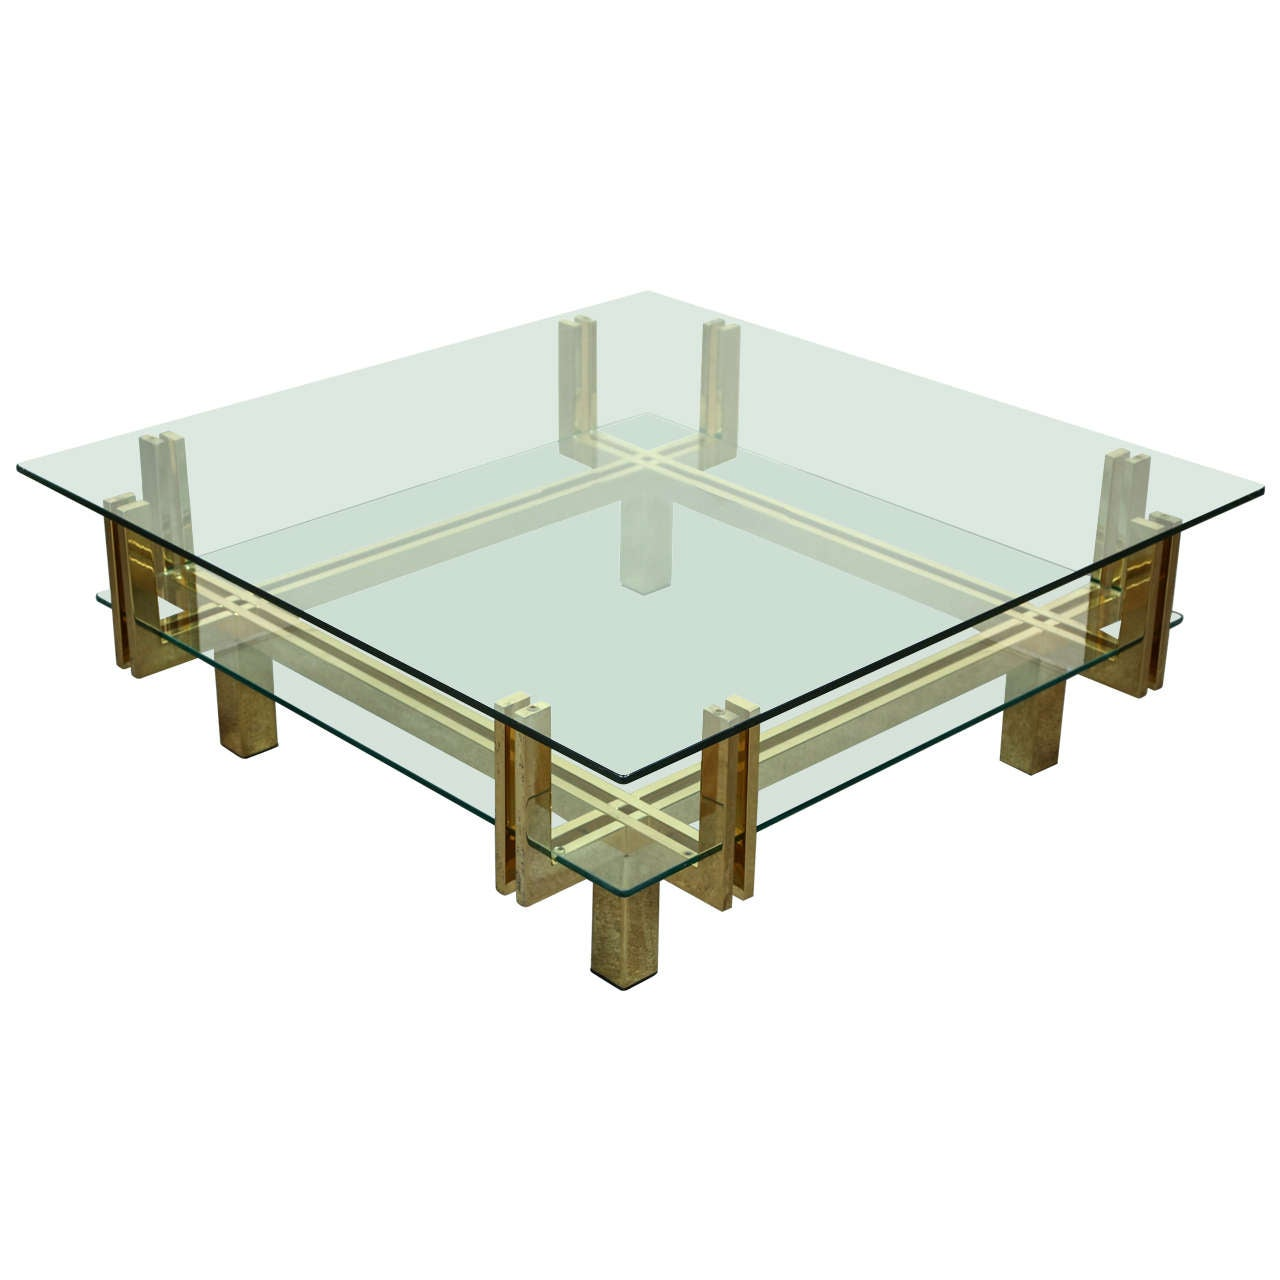 Geometric Brass And Glass Coffee Table In Two Tiers At 1stdibs